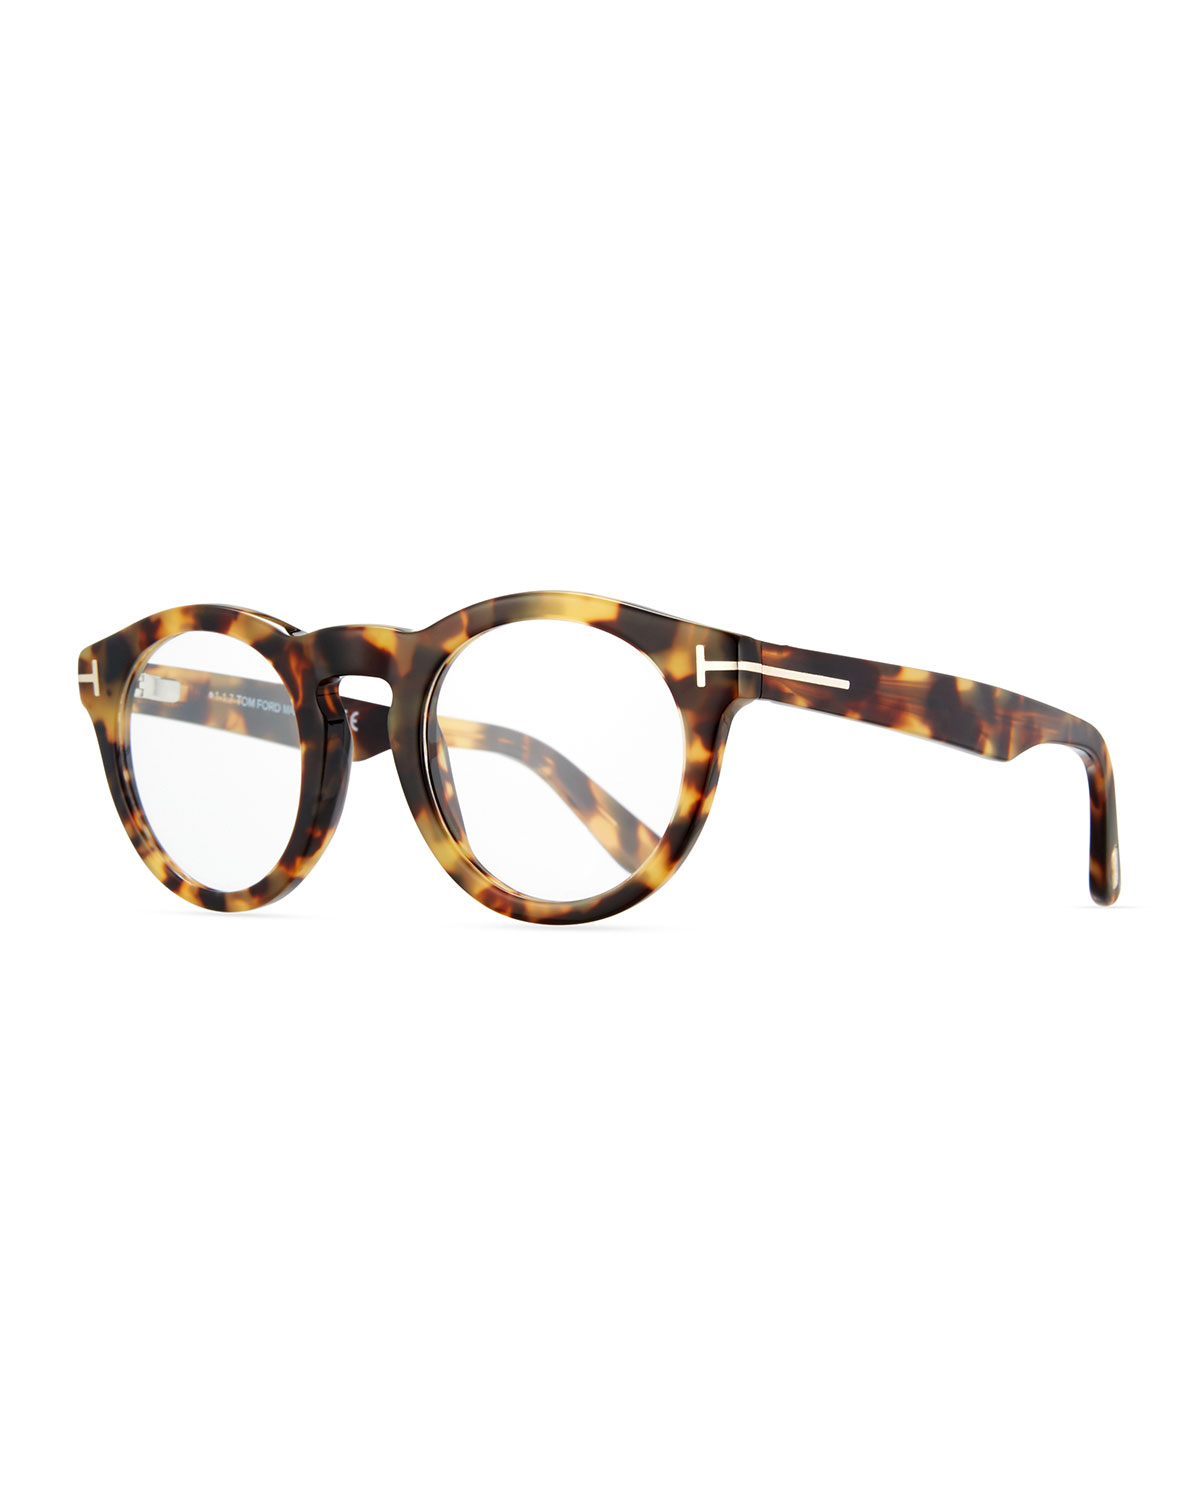 5c03c3356d TOM FORD Soft Rounded Acetate Optical Frames